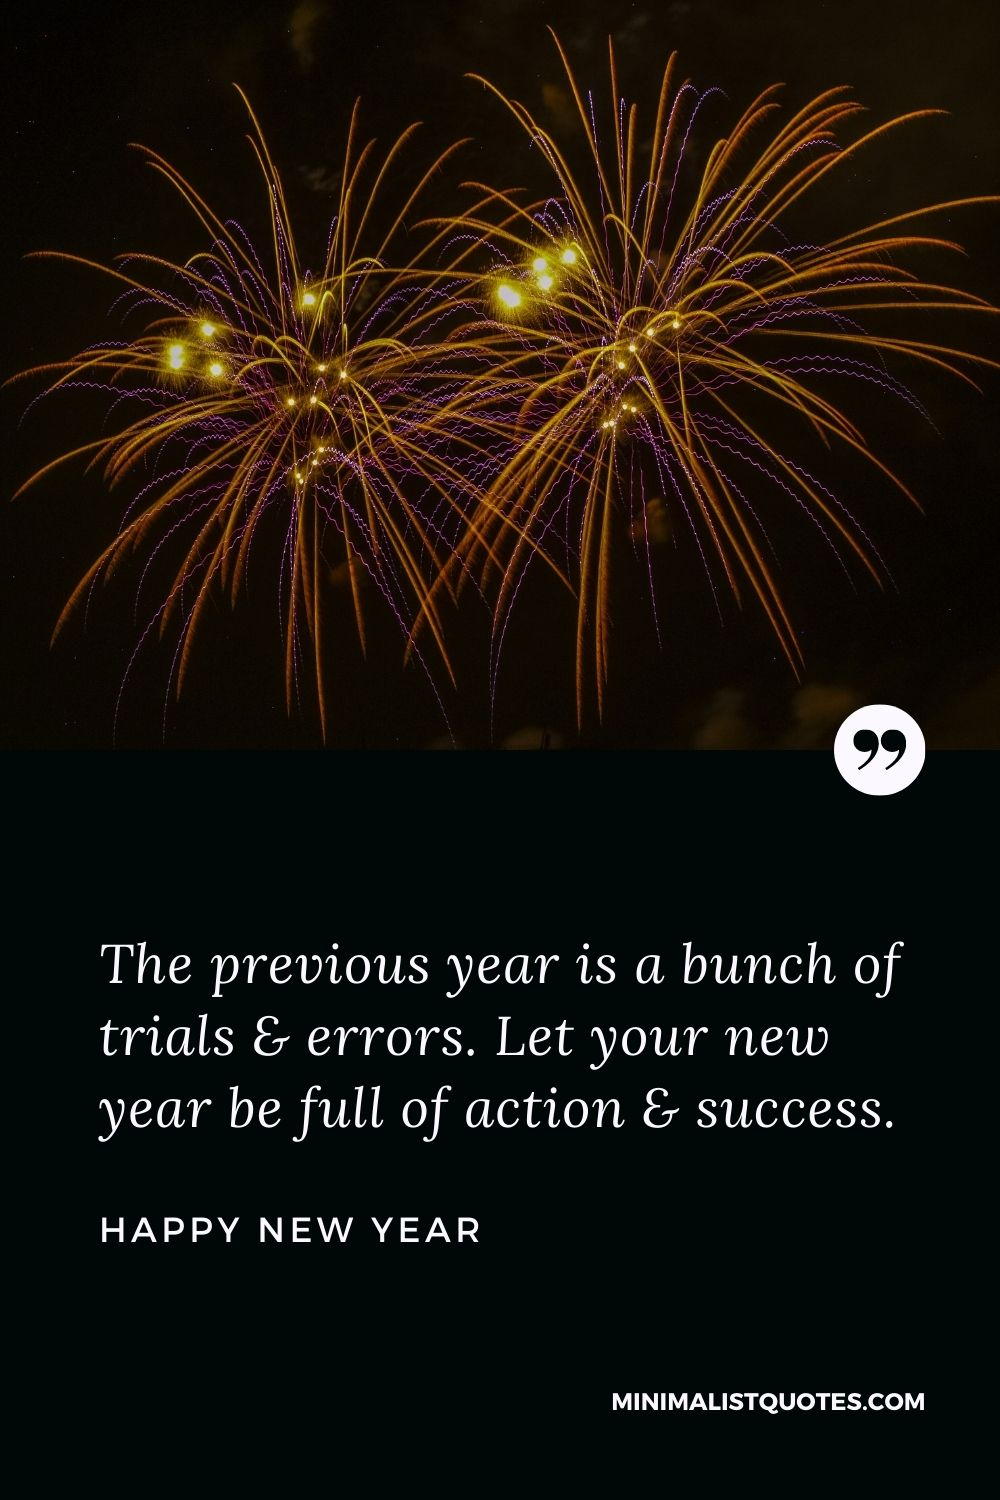 New Year Wish - The previous year is a bunch of trials& errors. Let your new year be full of action & success.